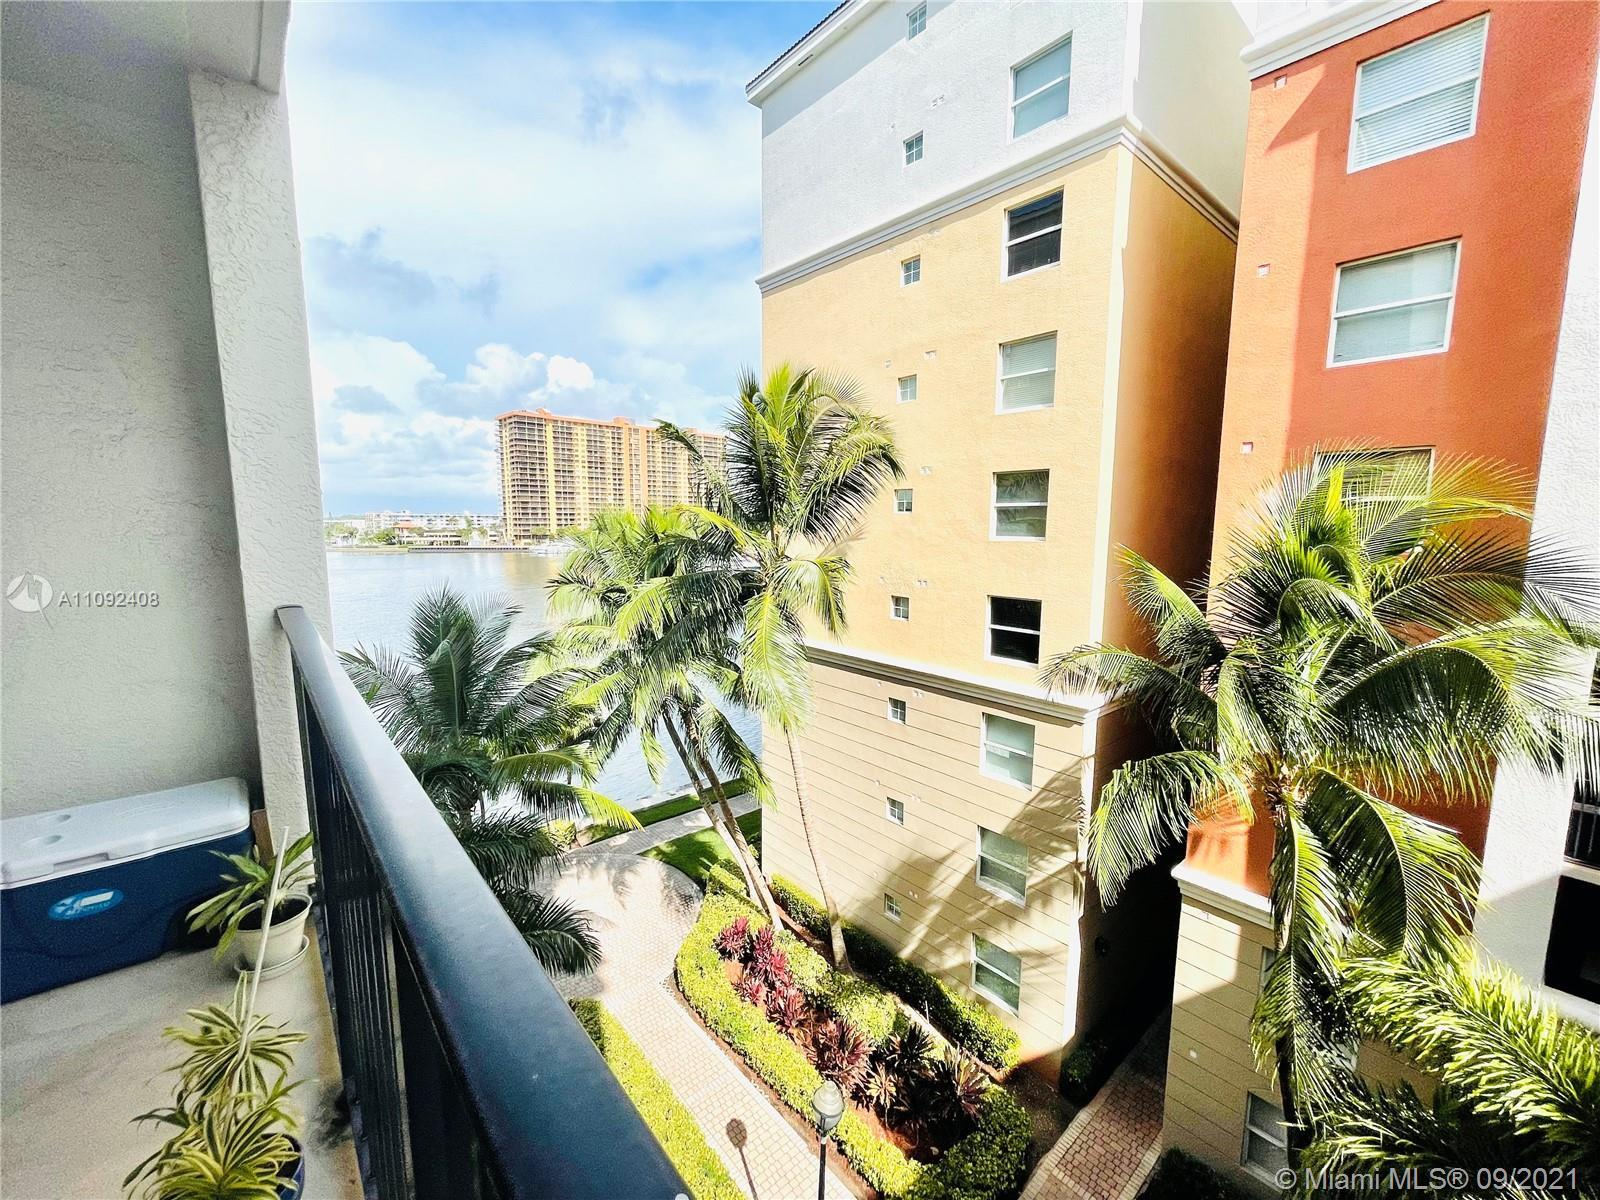 Very bright with natural light 1 bed 1 bath with a beautiful Partial Intracoastal View Condo in a hi